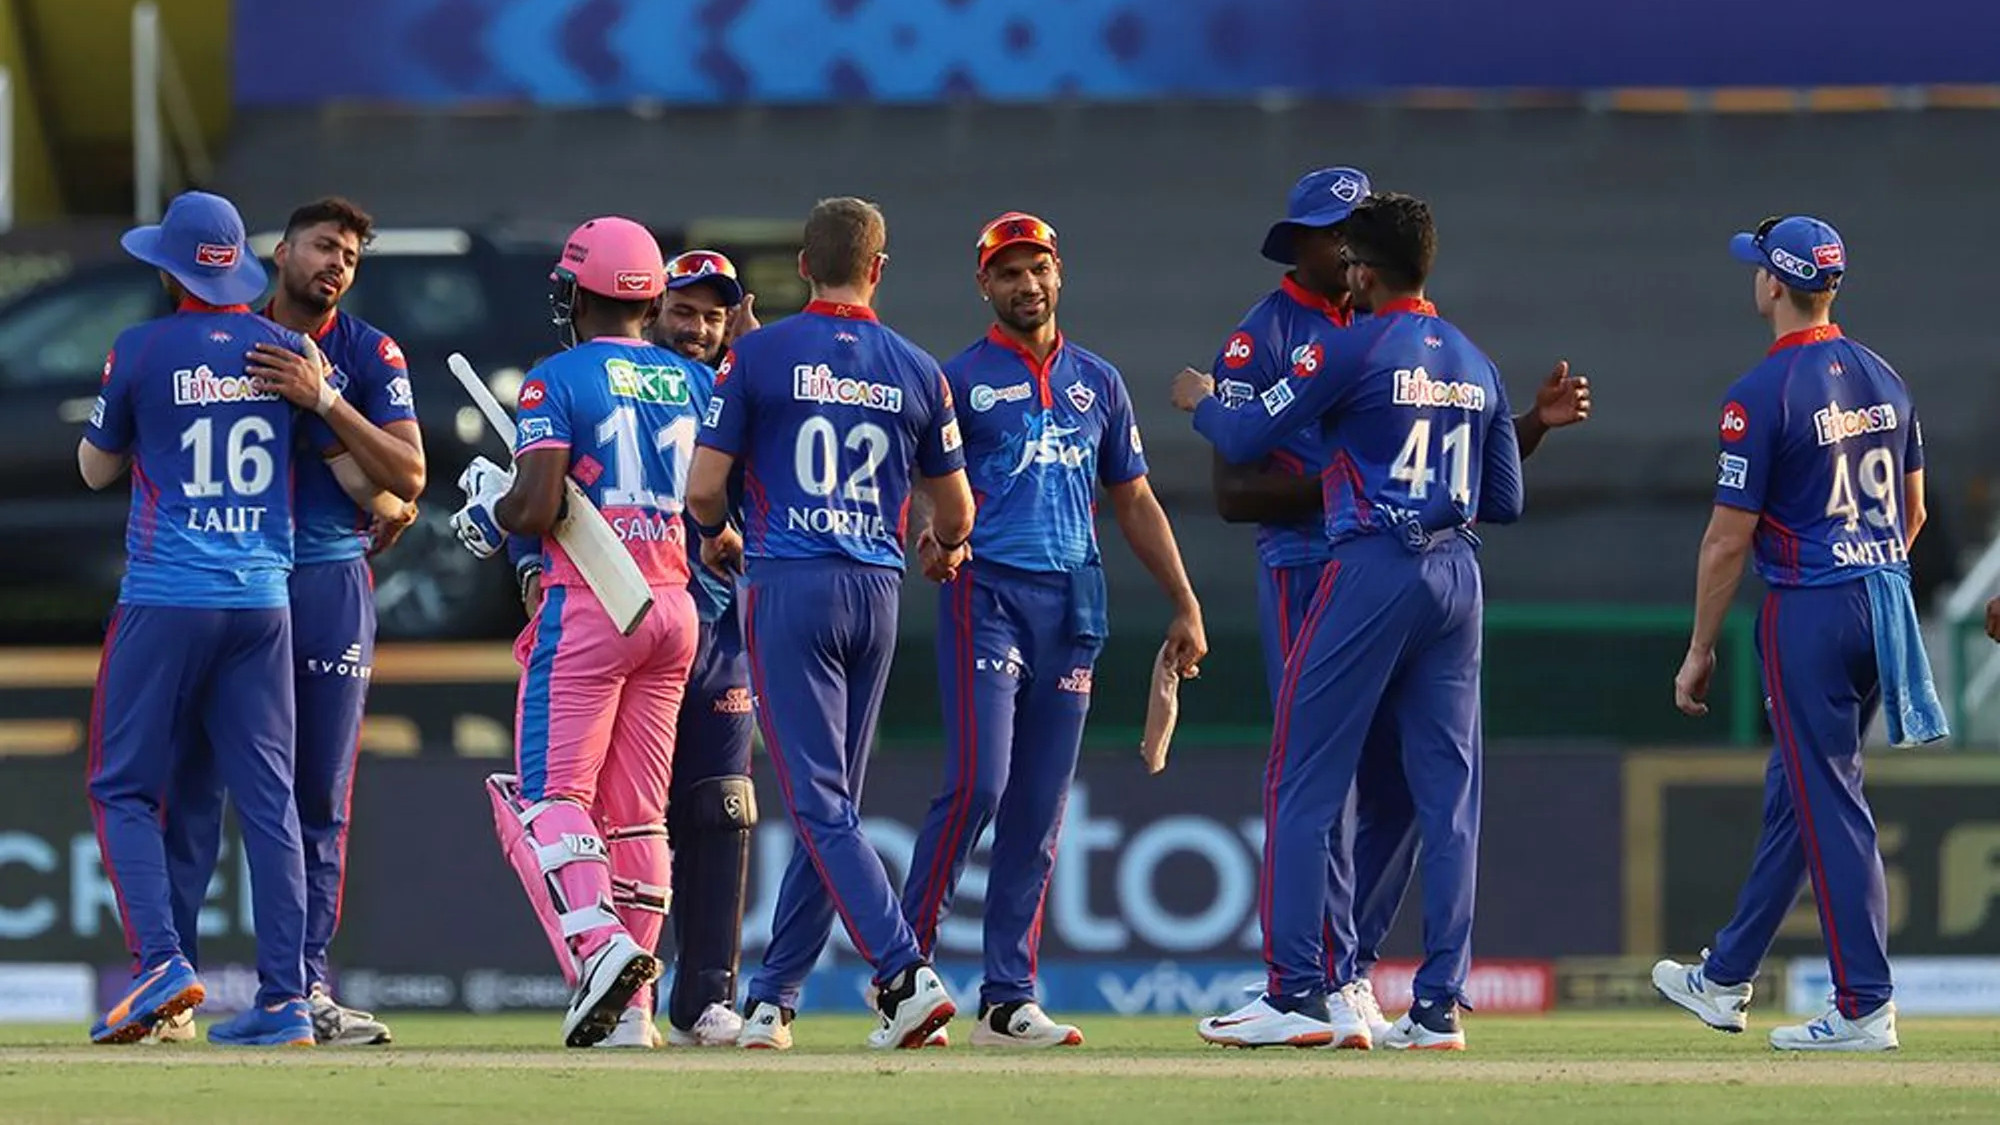 IPL 2021: Delhi Capitals go to top of points table after a comfortable 33-run win over Rajasthan Royals